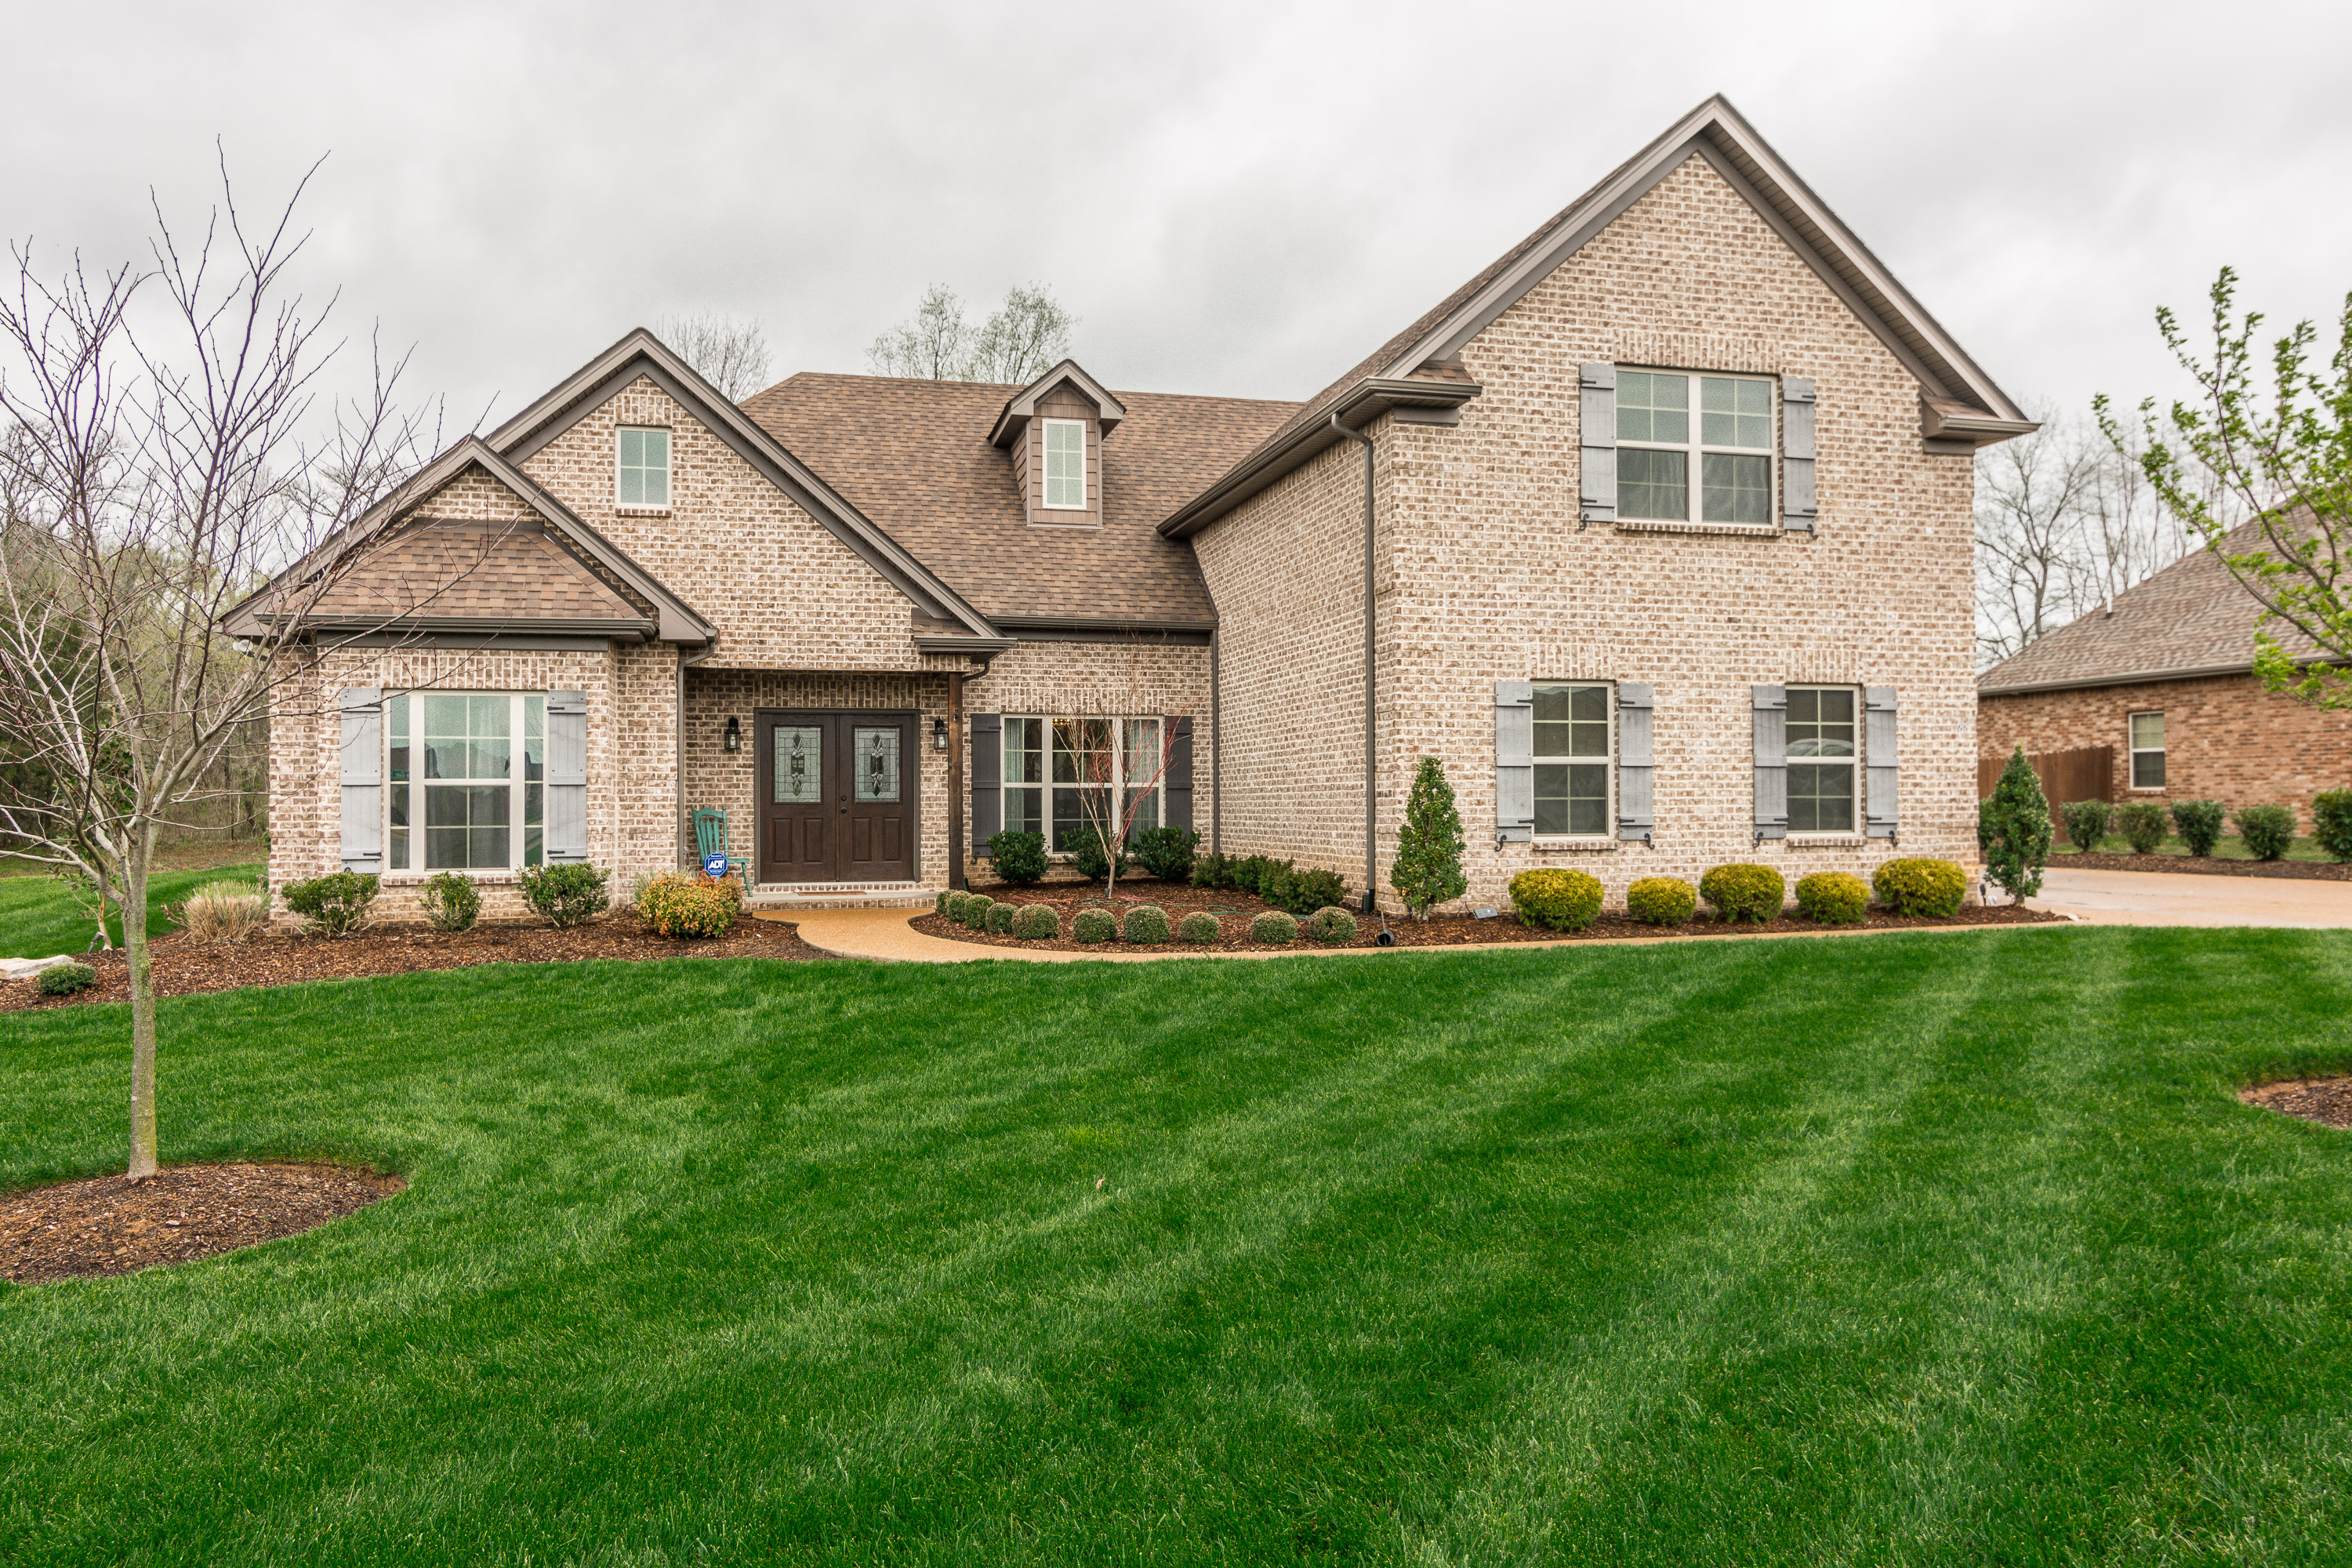 Latest homes for sale in Hickory Withe